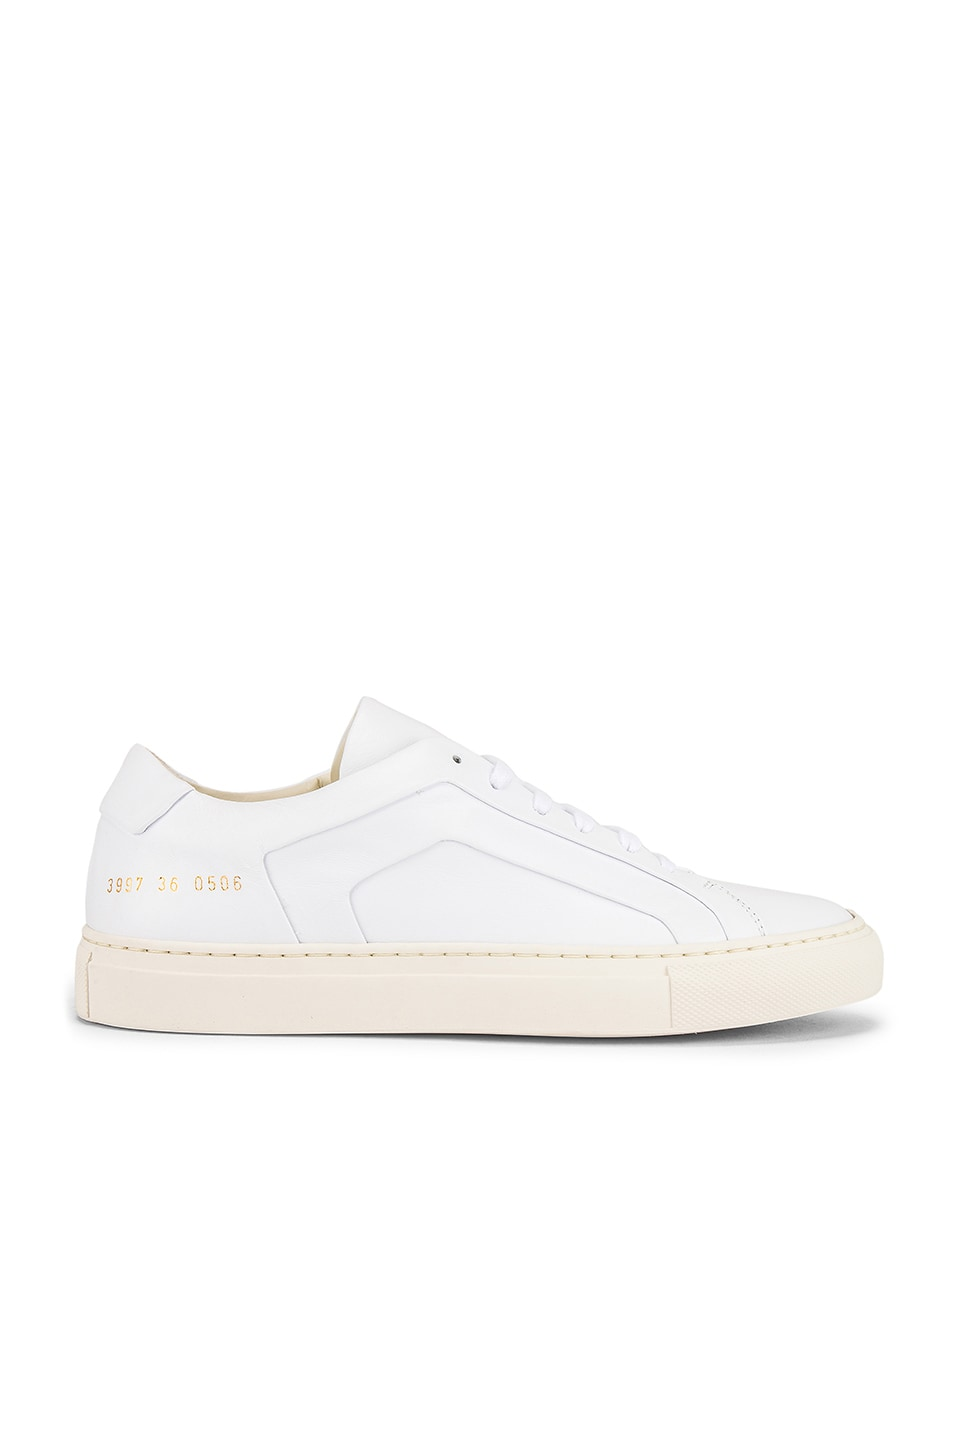 Common Projects Achilles Multiply Sneaker in White